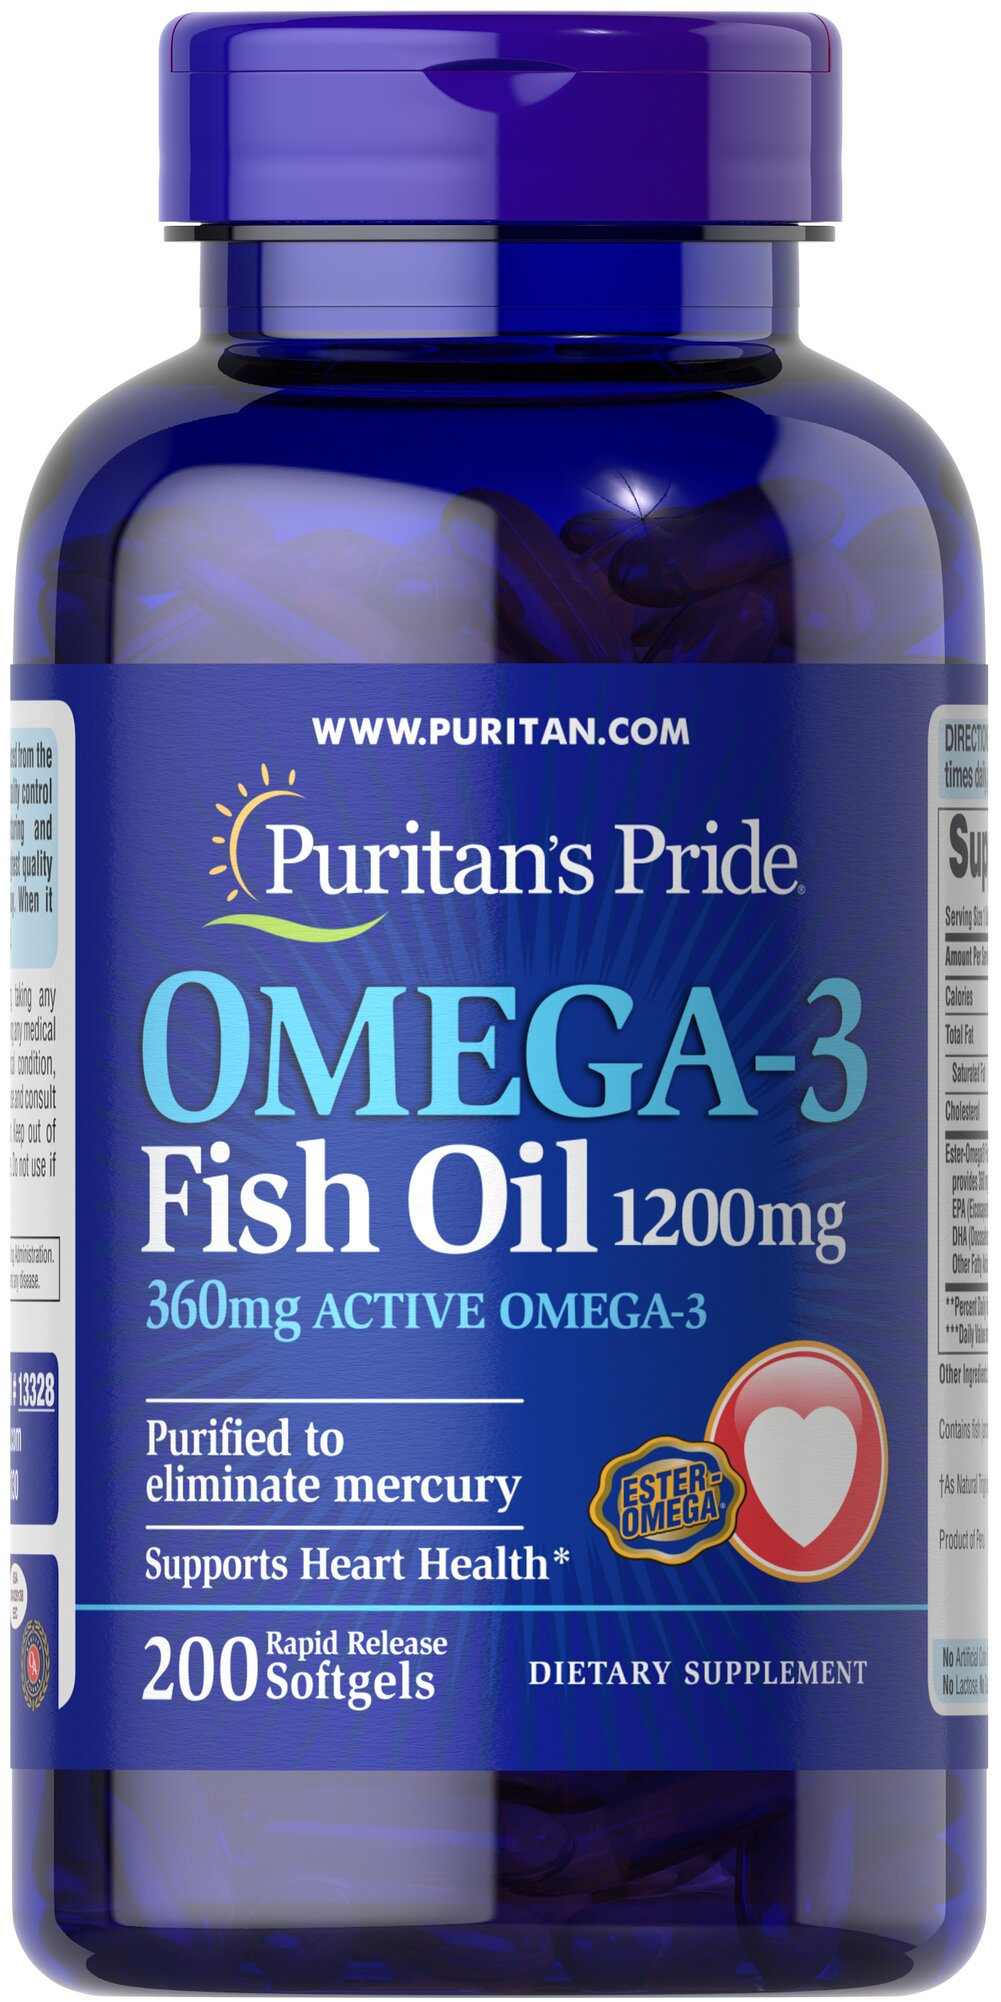 Omega-3 Fish Oil 1200 mg <p><span></span>Provides 360mg of active Omega-3.</p><p><span></span>Supports heart health.**</p><p><span></span>Purified to eliminate mercury.</p><p>This Ester-Omega® Fish Oil provides 360mg of total omega-3 fatty acids, comprising of EPA, DHA and other fatty acids. EPA and DHA fatty acids support heart health.** Purified to eliminate mercury. Rapid release softgels.</p> 200 Softgel